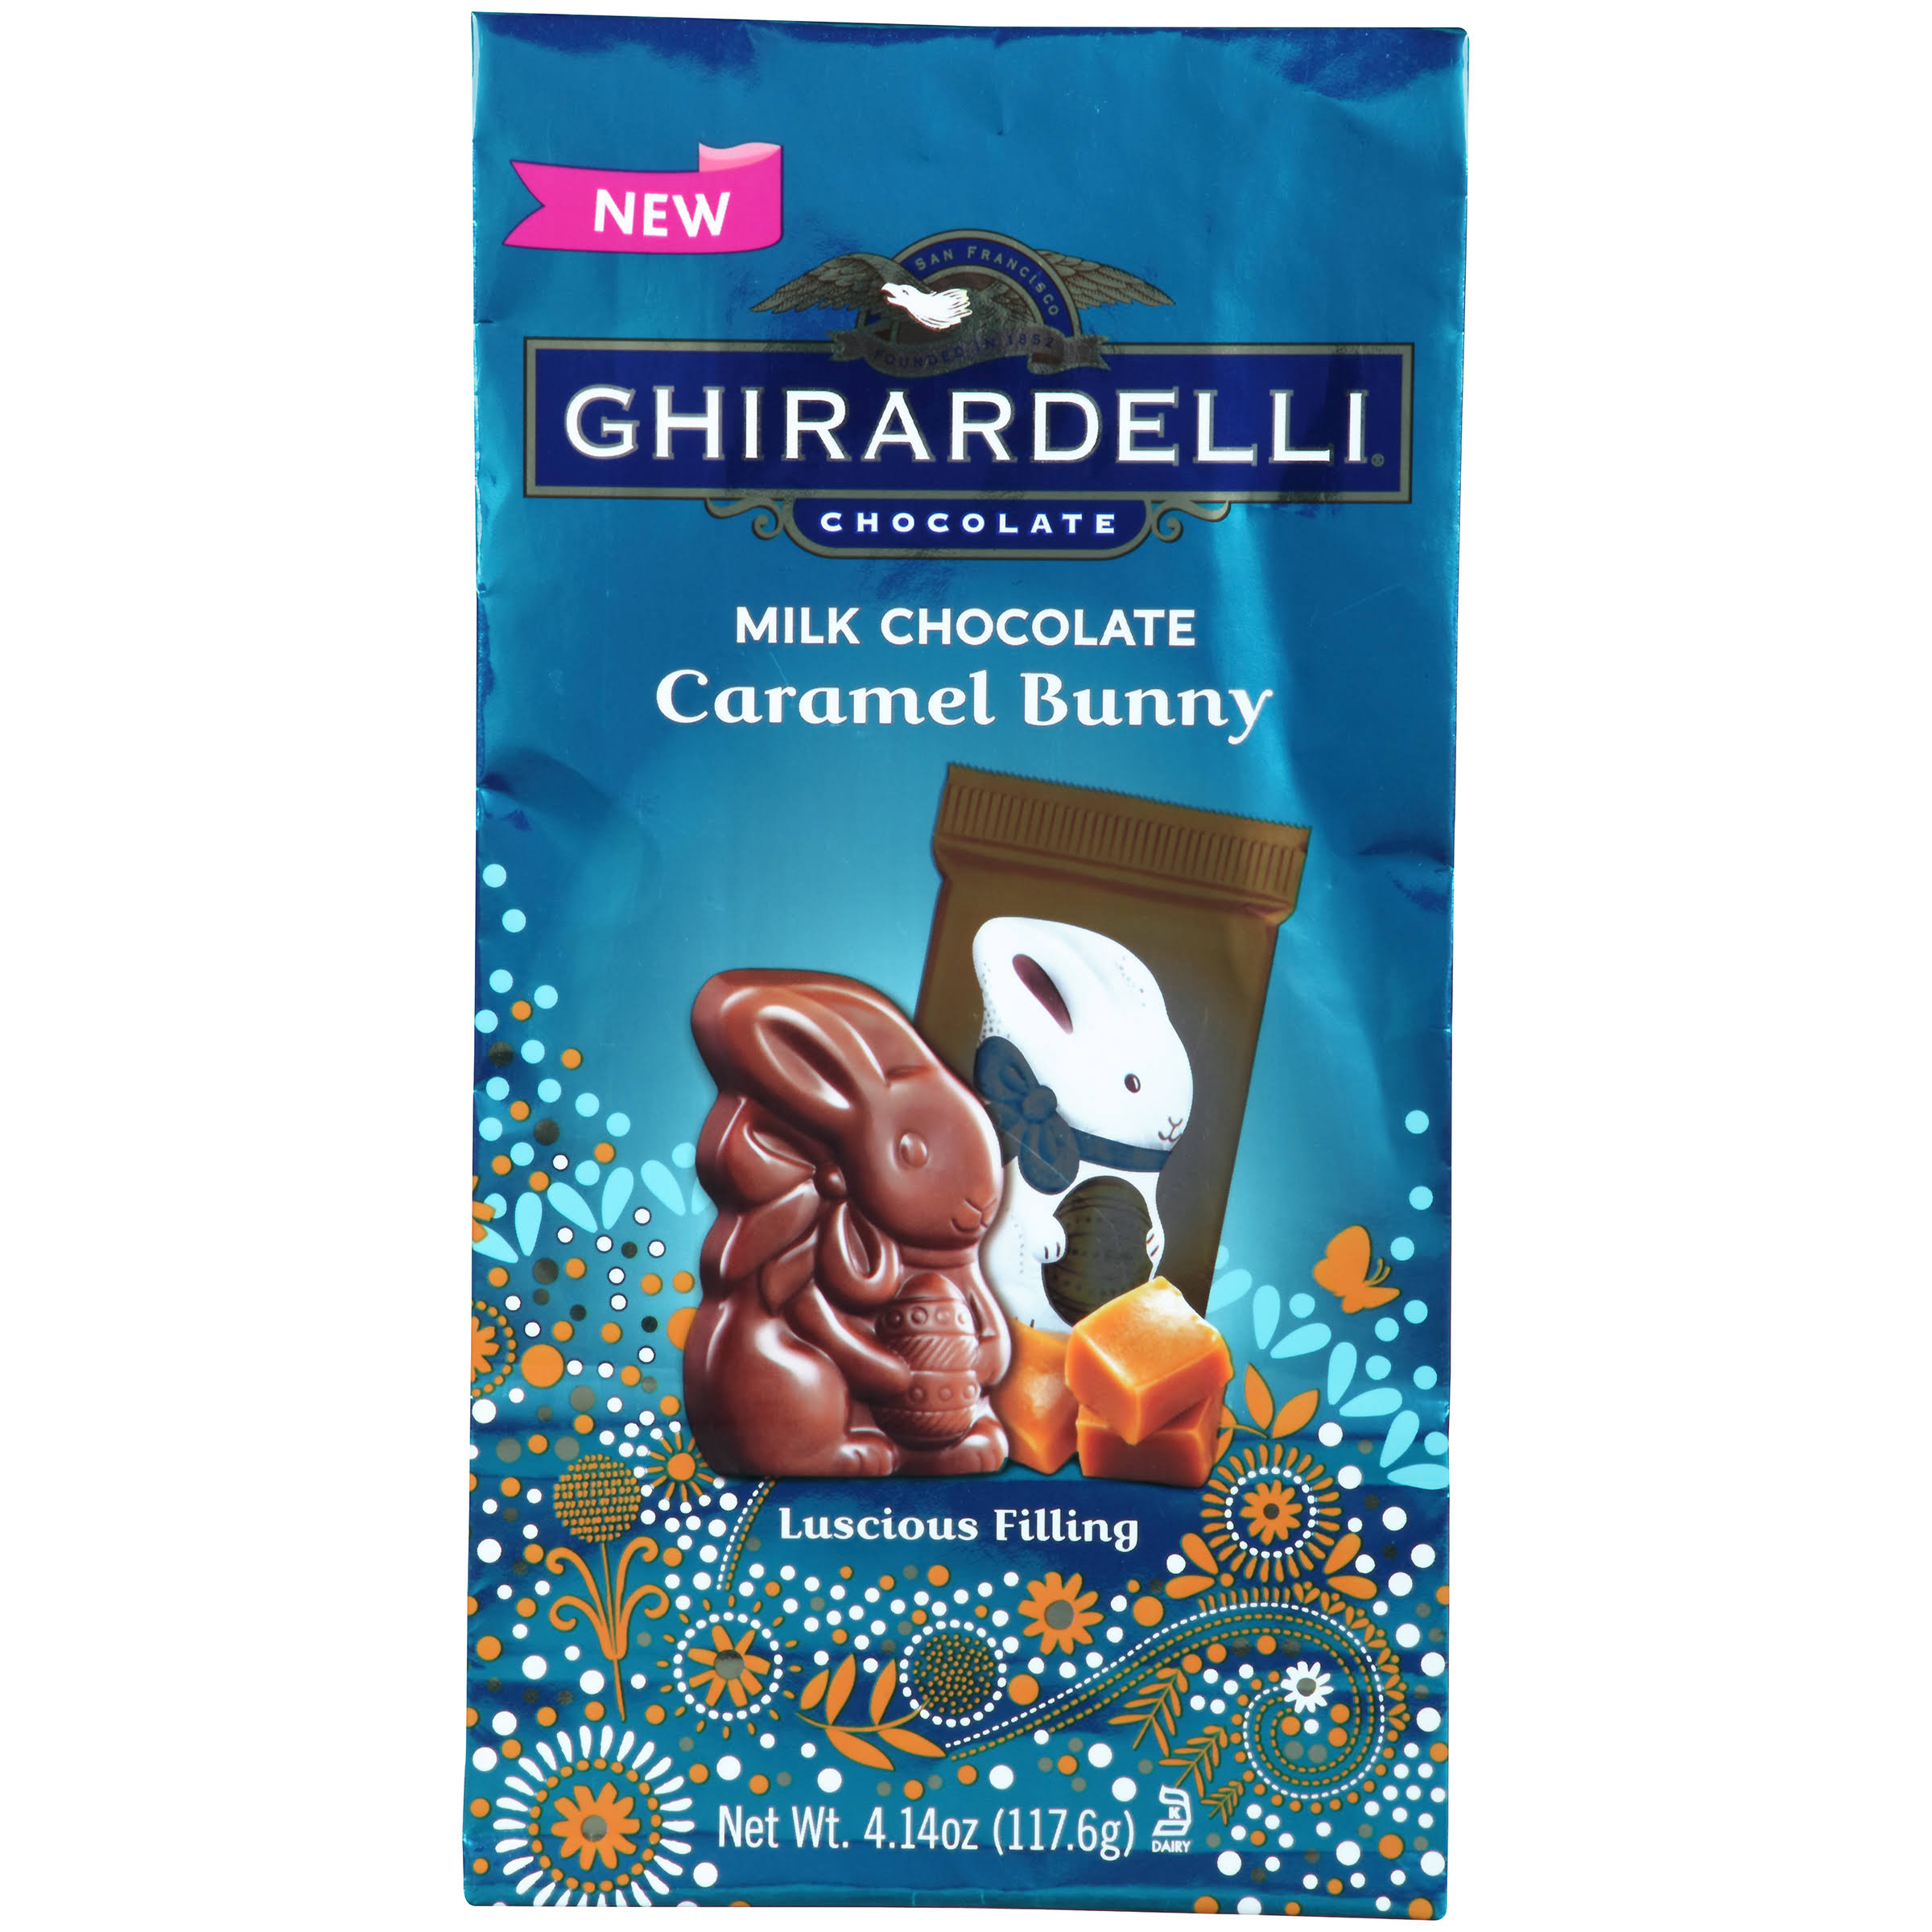 Ghirardelli Milk Chocolate - Caramel Bunny , 4.14oz